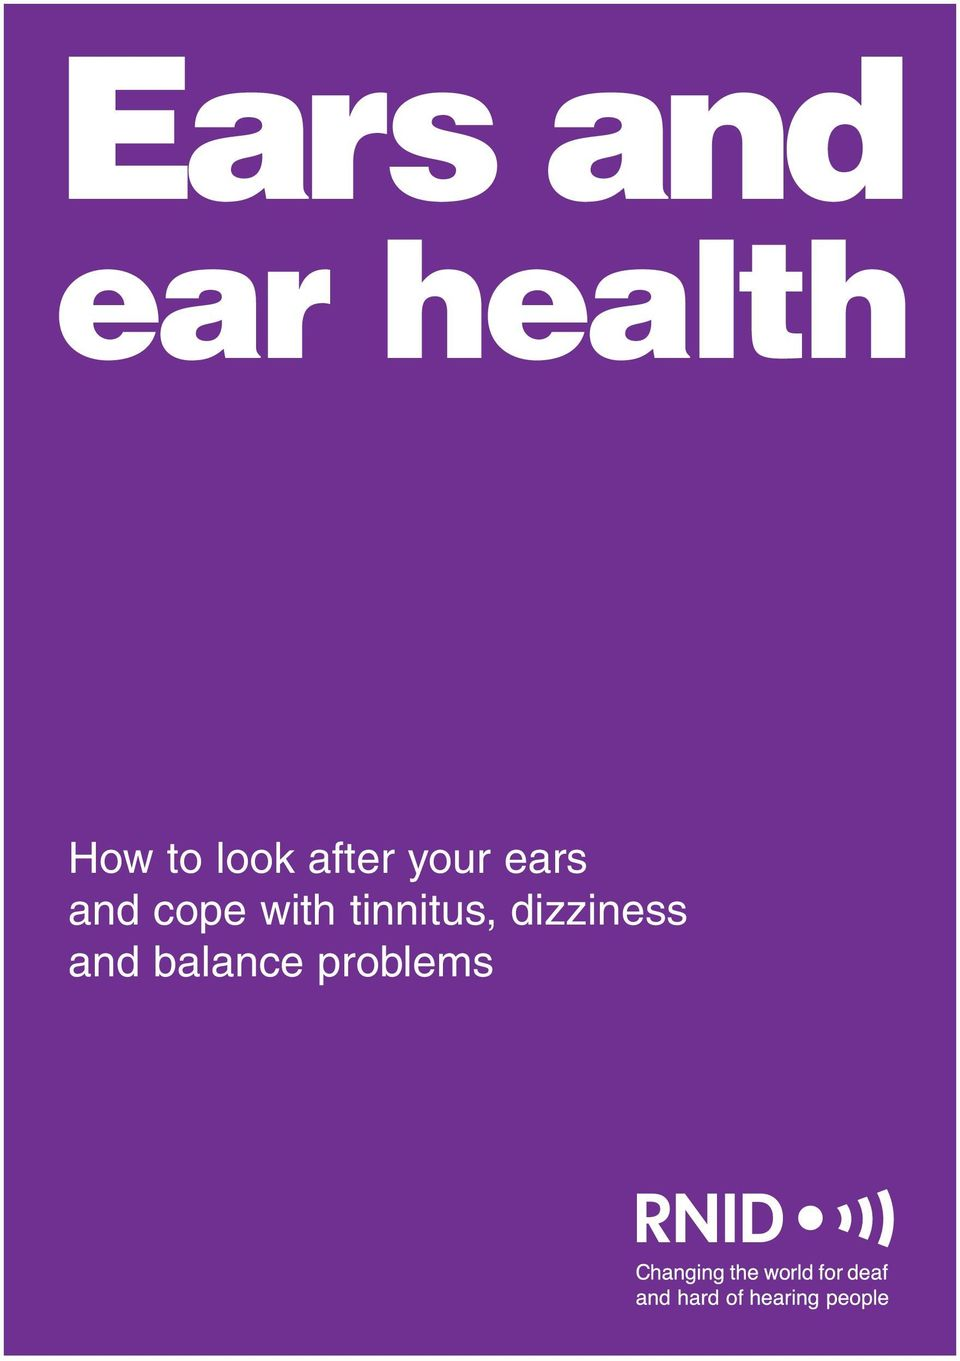 and cope with tinnitus,